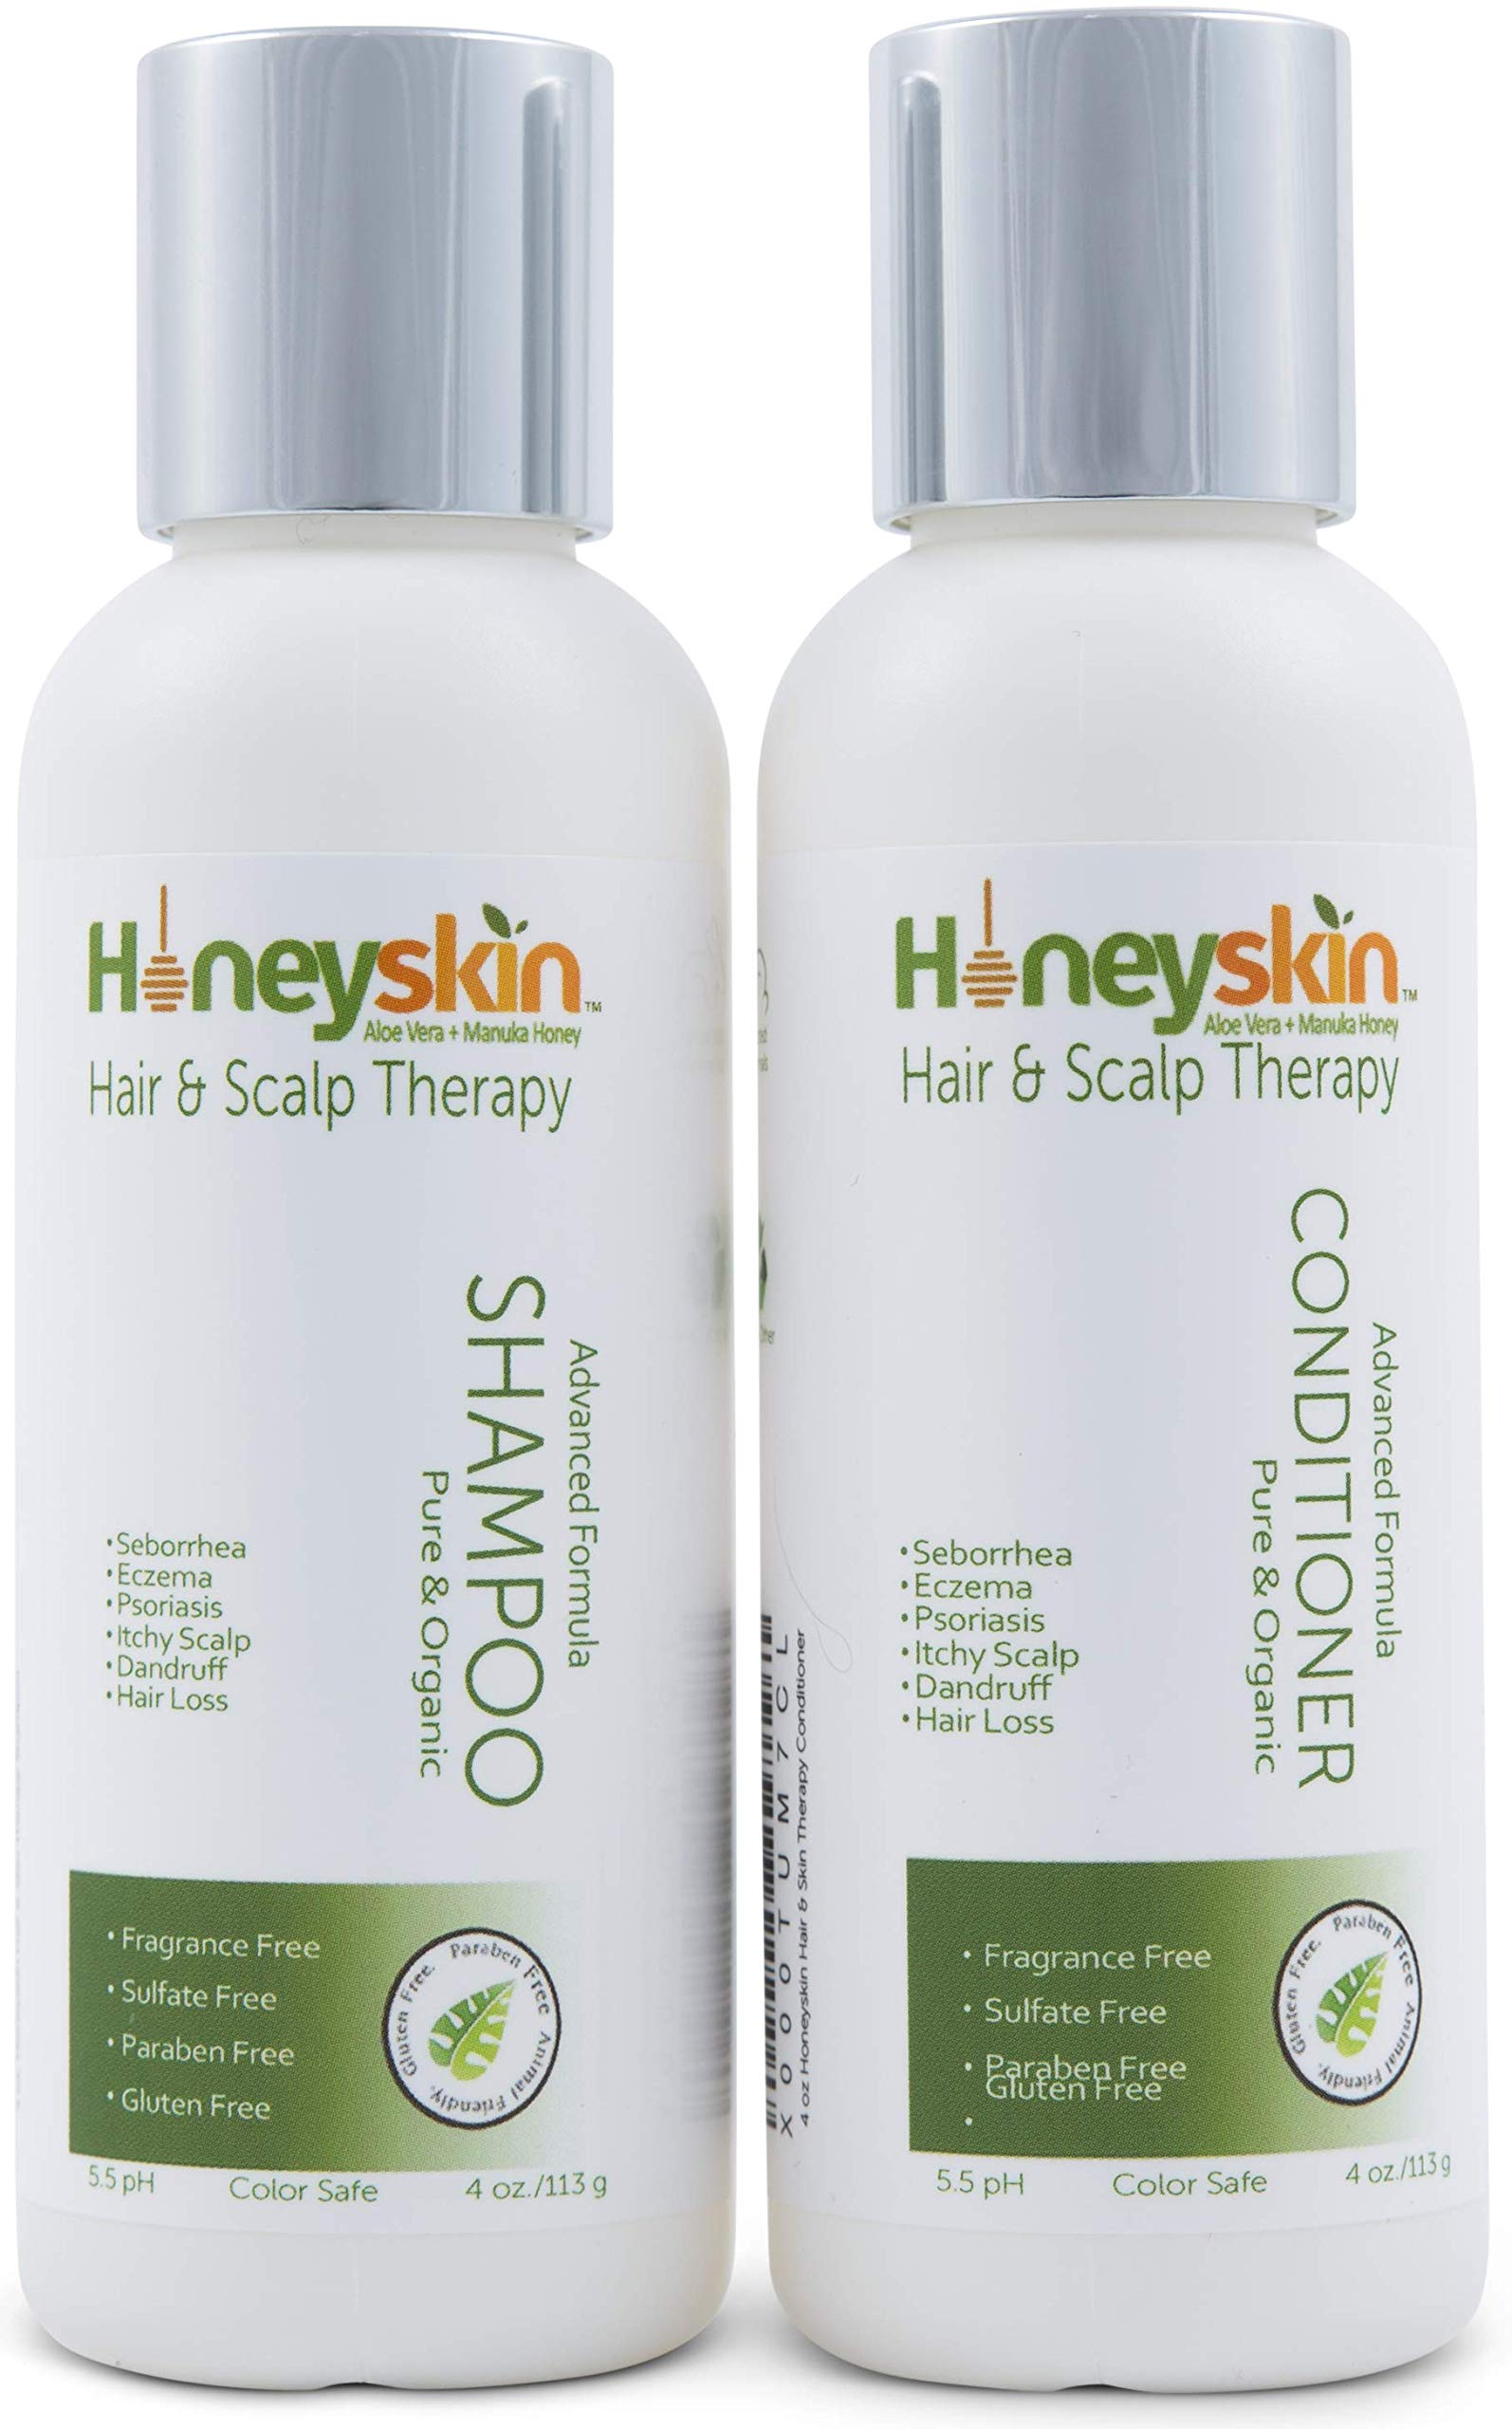 Hair Growth Shampoo and Conditioner Set - with Manuka Honey, Aloe Vera and Coconut Oil - for Frizzy, Itchy and Dry Scalp - Hair Loss and Thinning Treatment - Paraben and Sulfate Free (4oz) by Honeyskin Organics